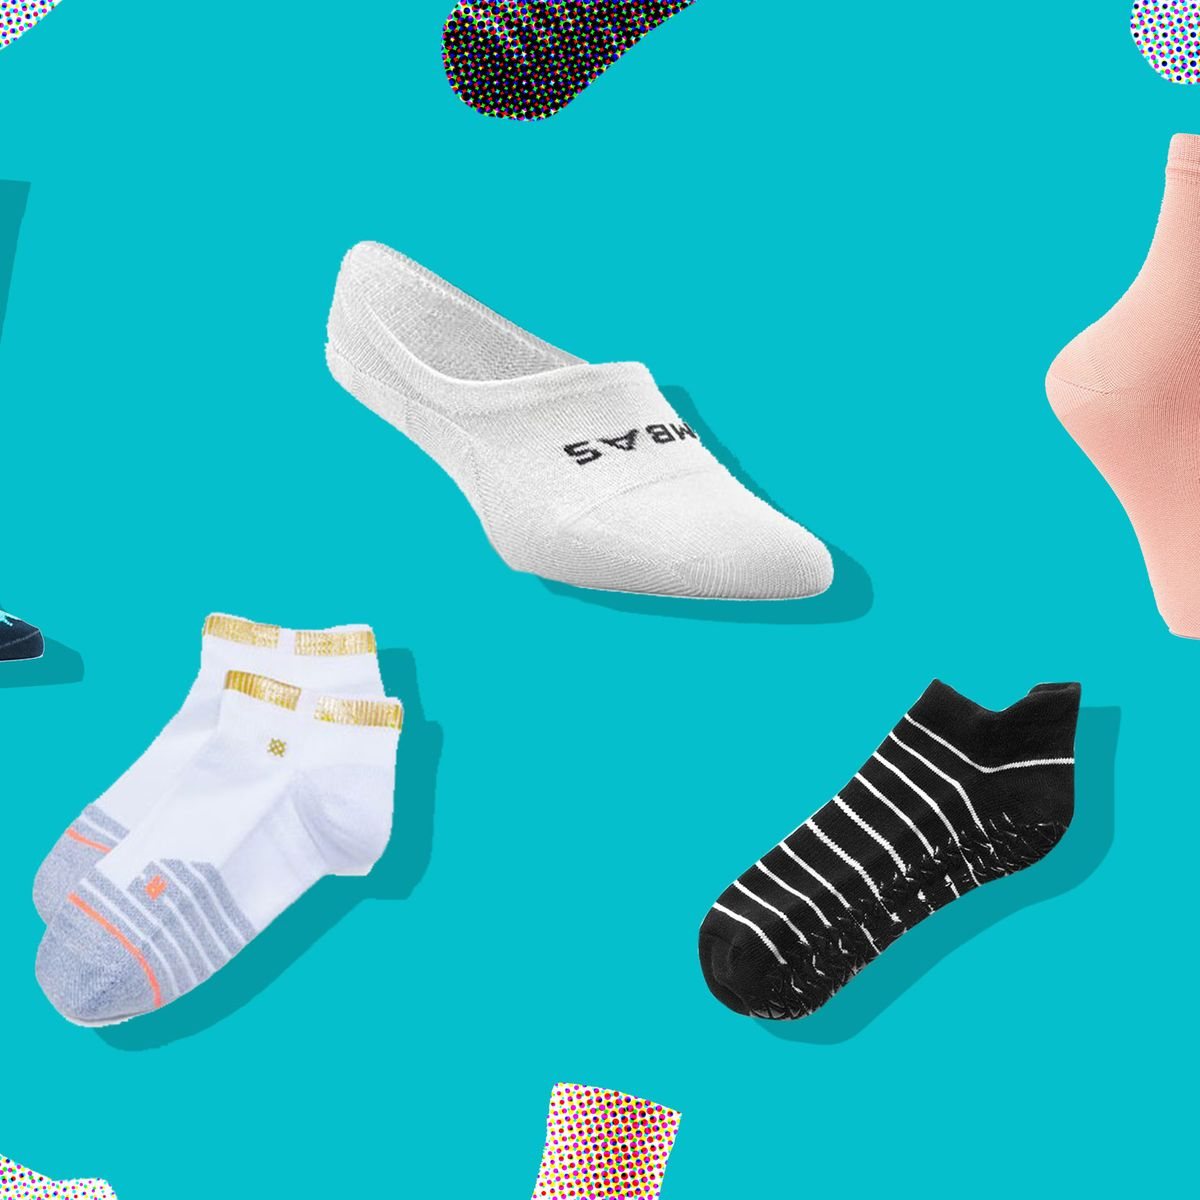 f1dd6bff15932 The Best Socks for Women Reviews 2017